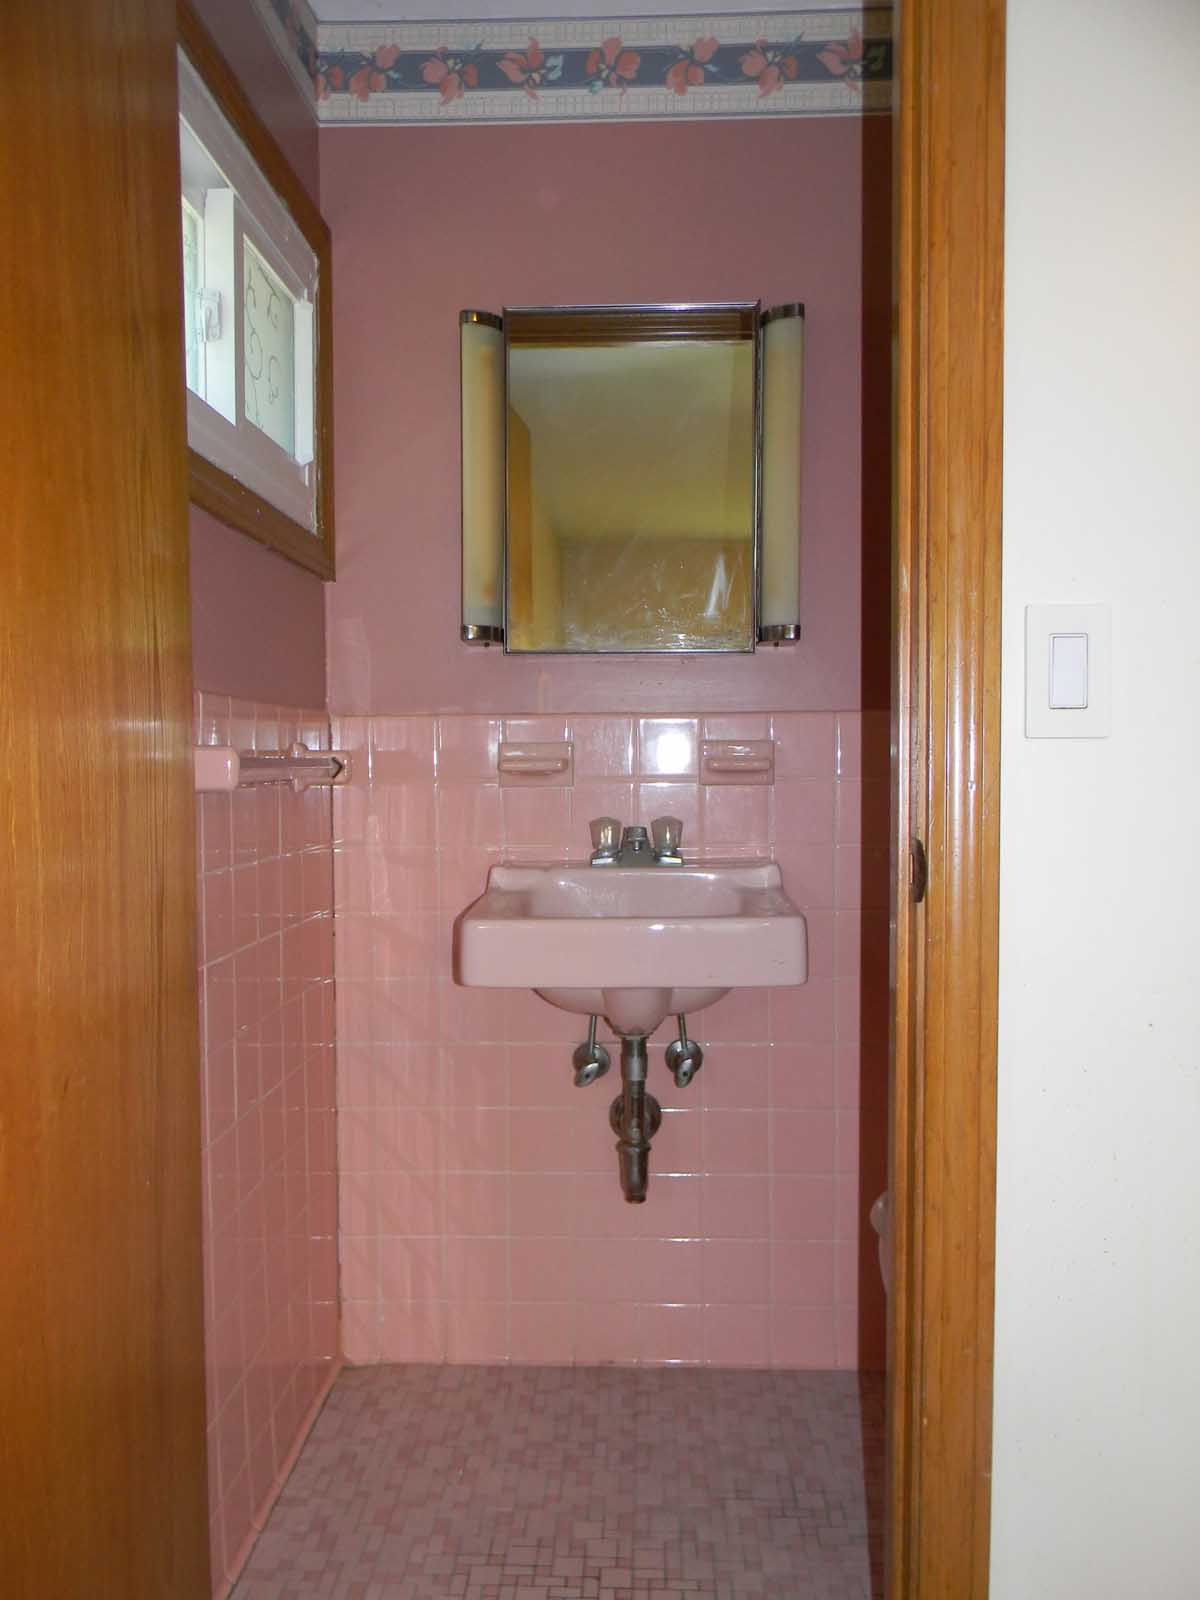 North St Newton - before view of sink and pink tile